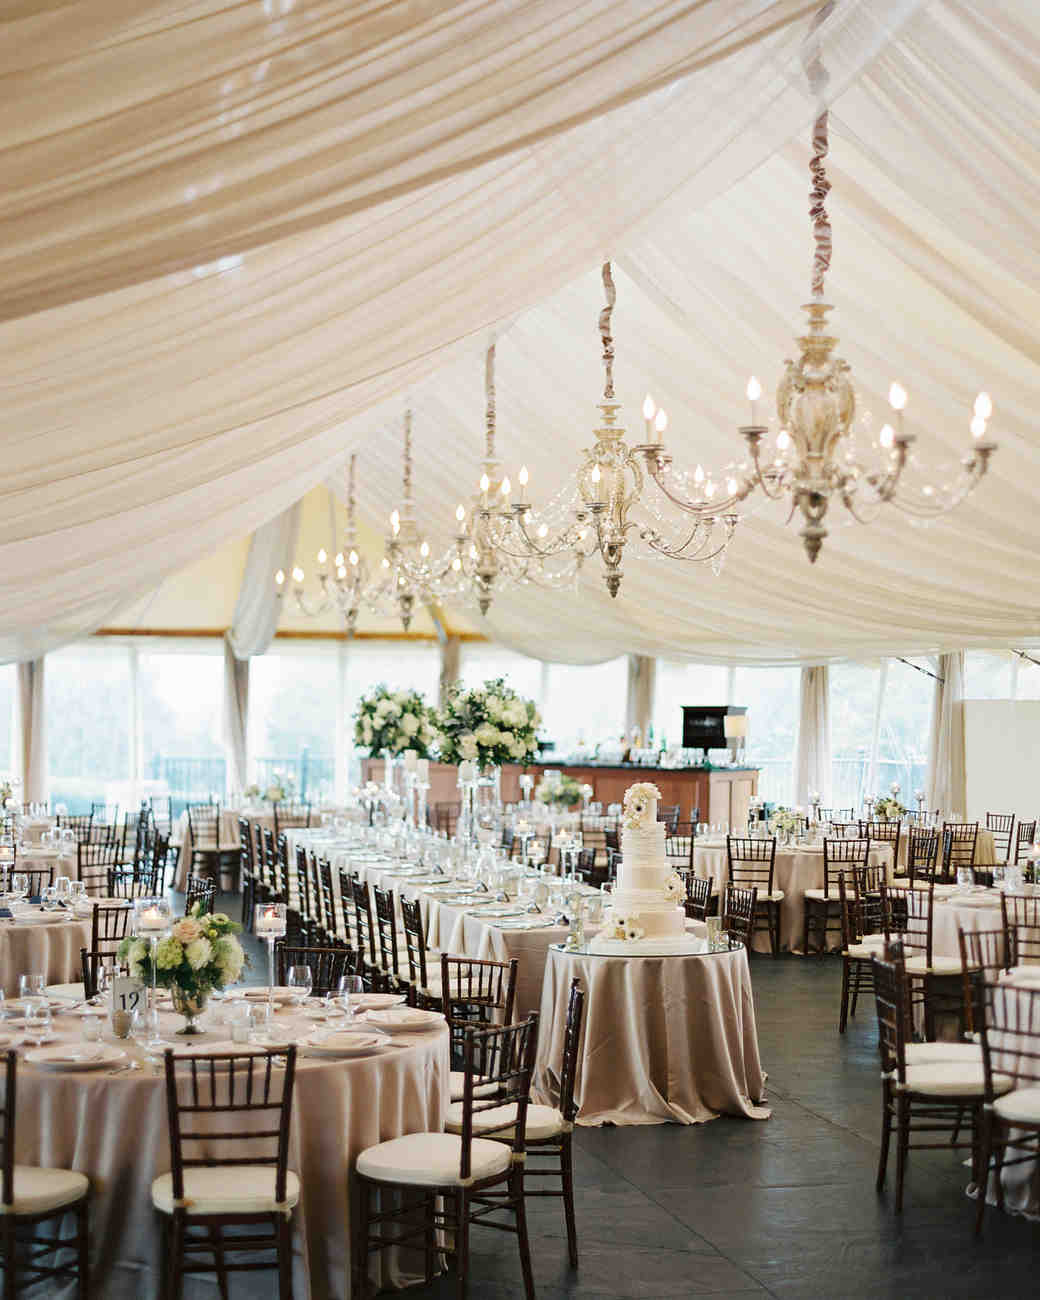 Tent decorating ideas to upgrade your wedding reception